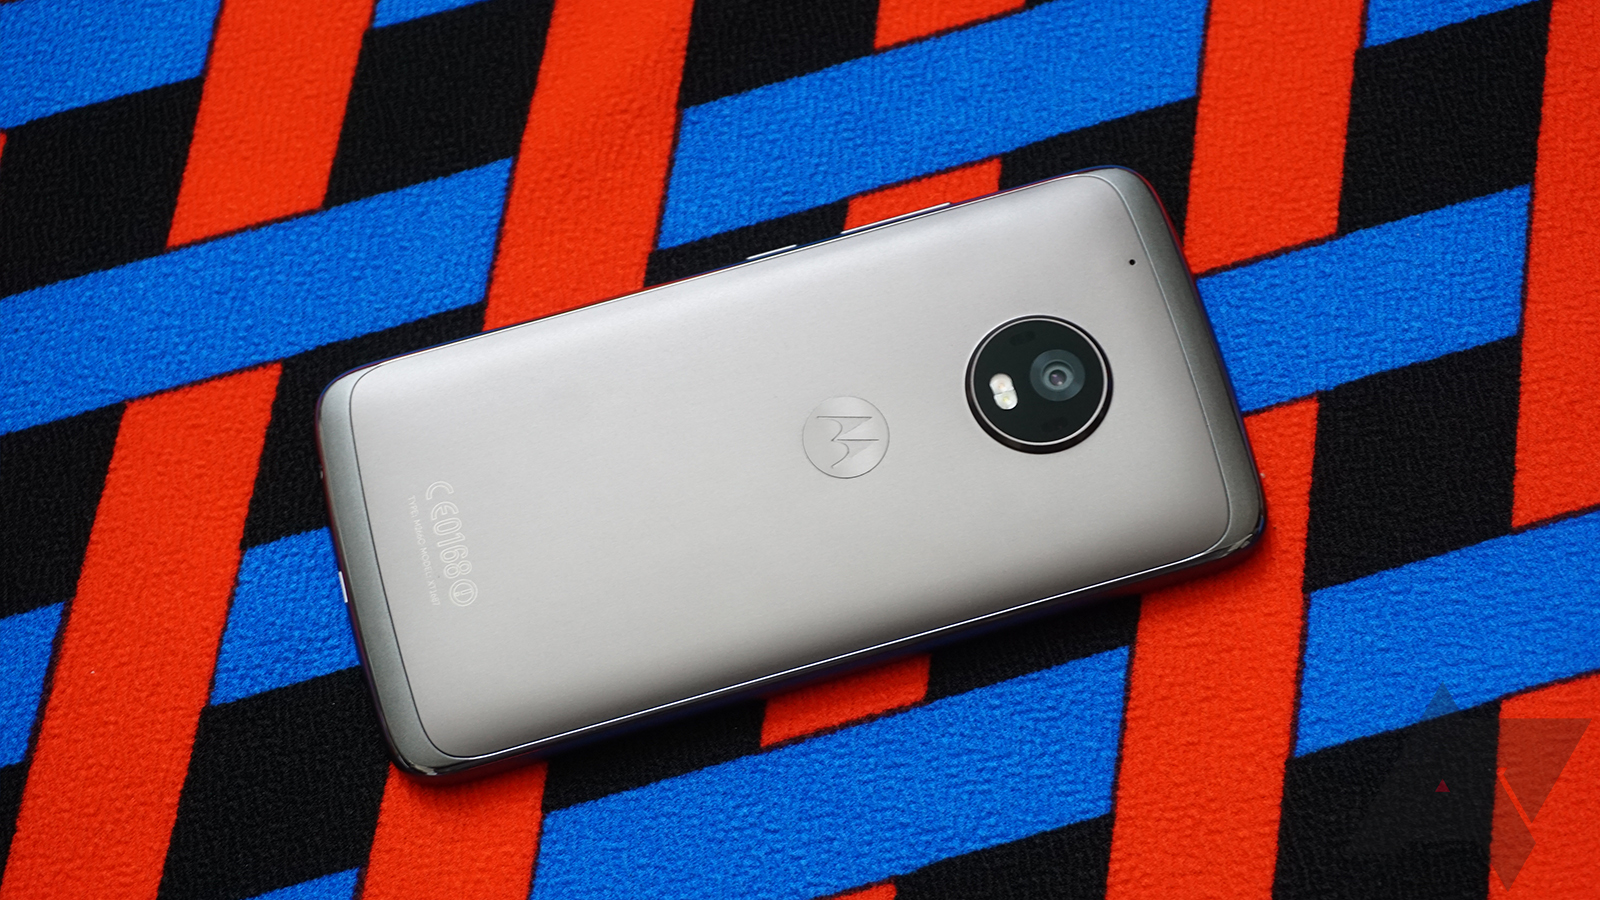 Motorola releases G5 Plus kernel source code for Android 8 1